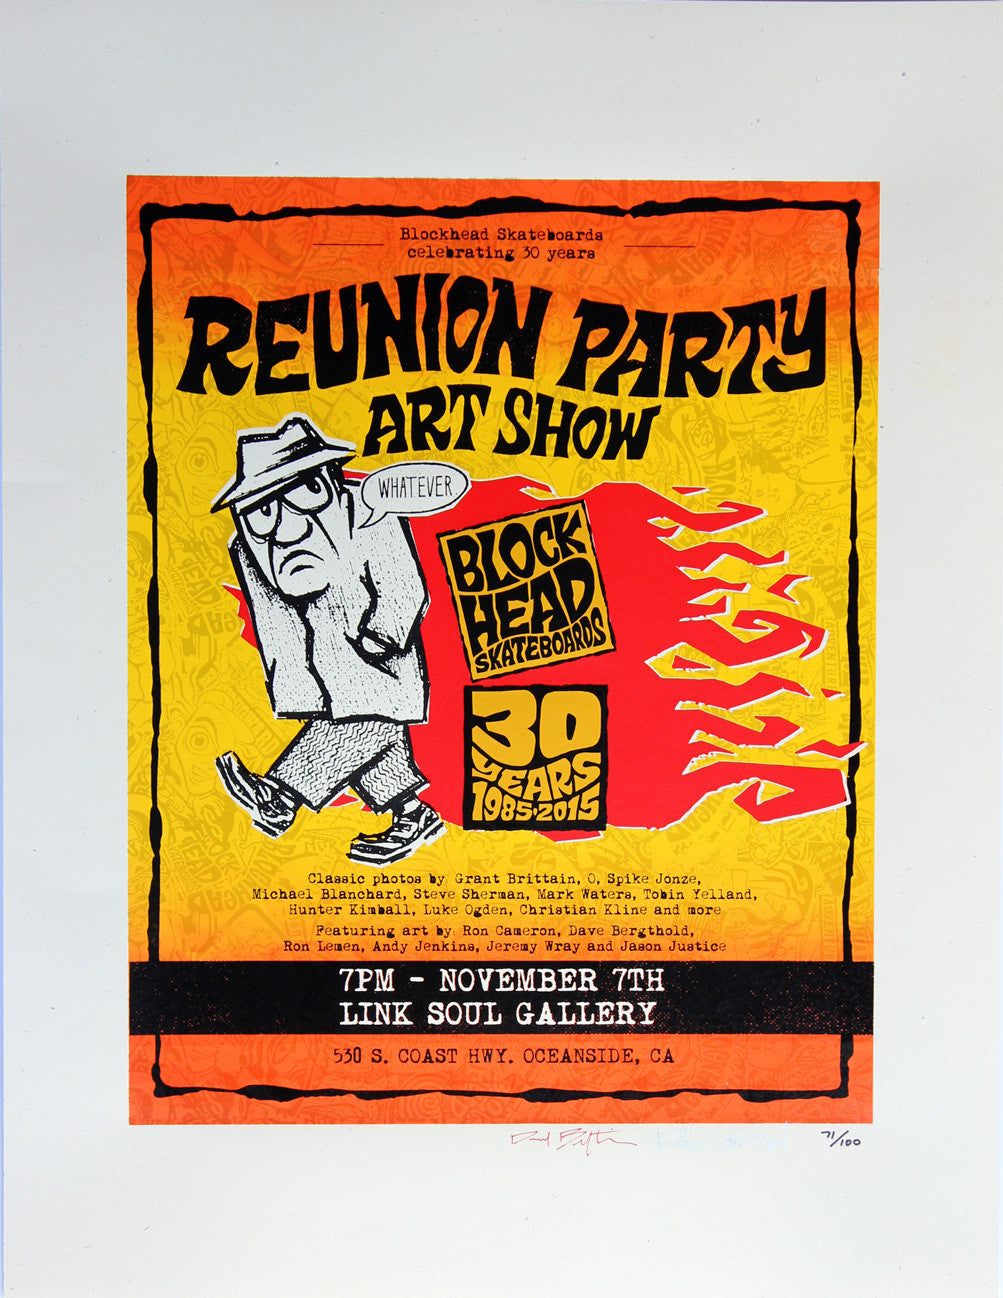 Blockhead 30 Year Reunion Party Art Print - SOLD OUT